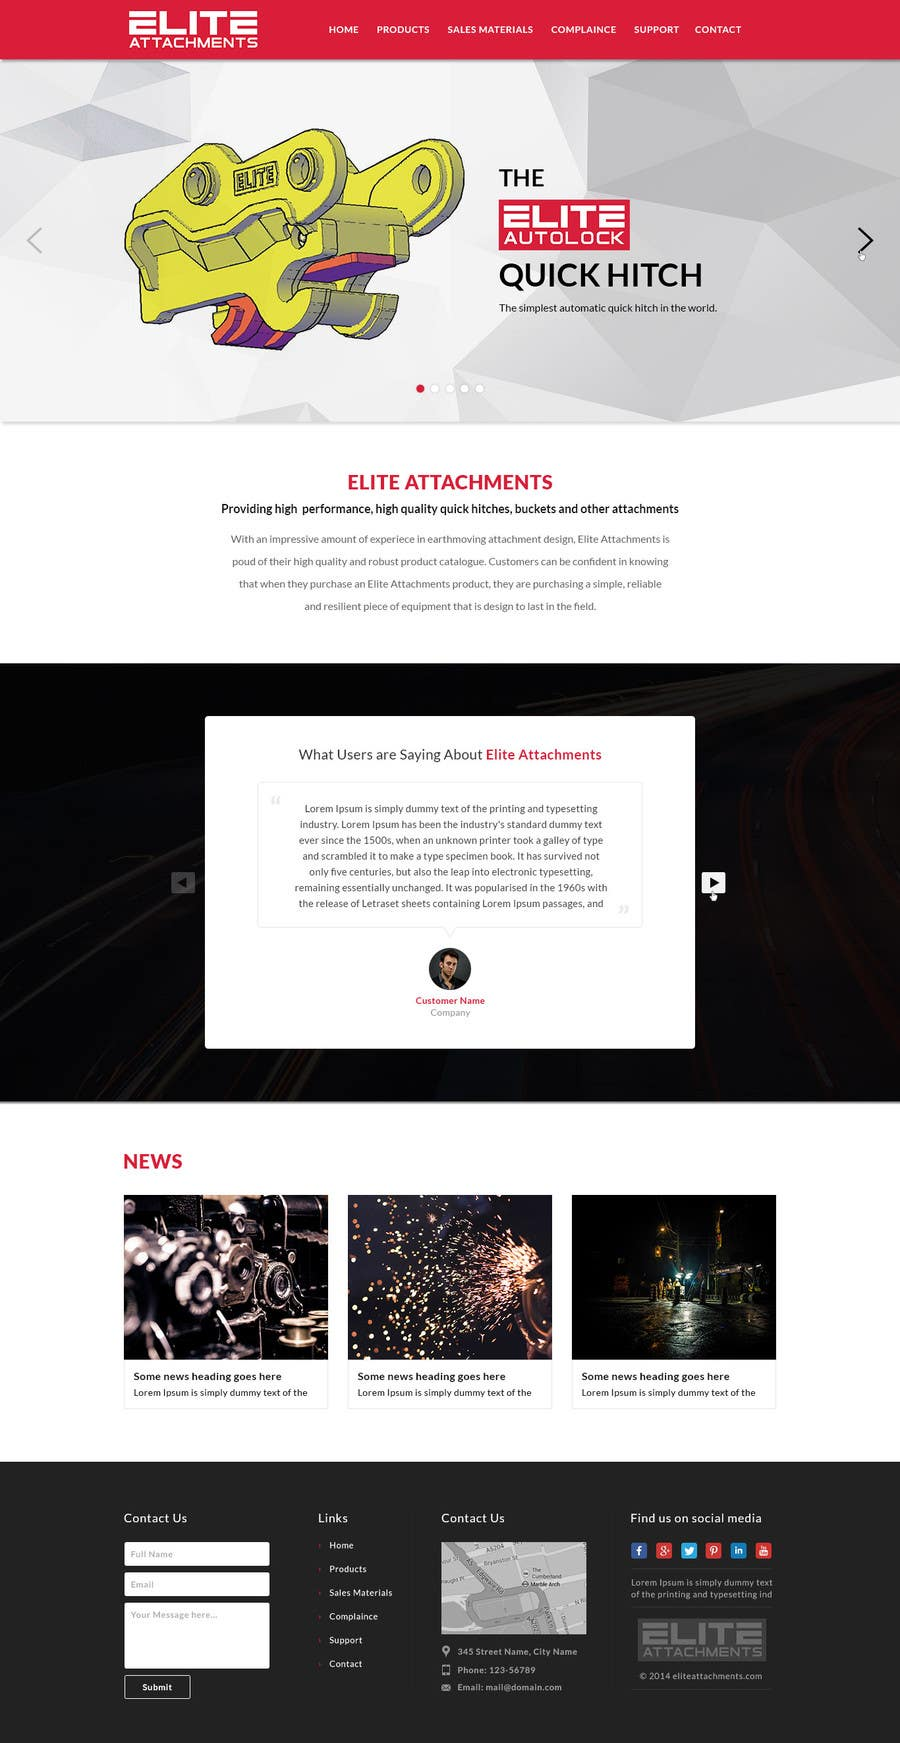 Konkurrenceindlæg #22 for Design a Website Mockup for Elite Attachments Website